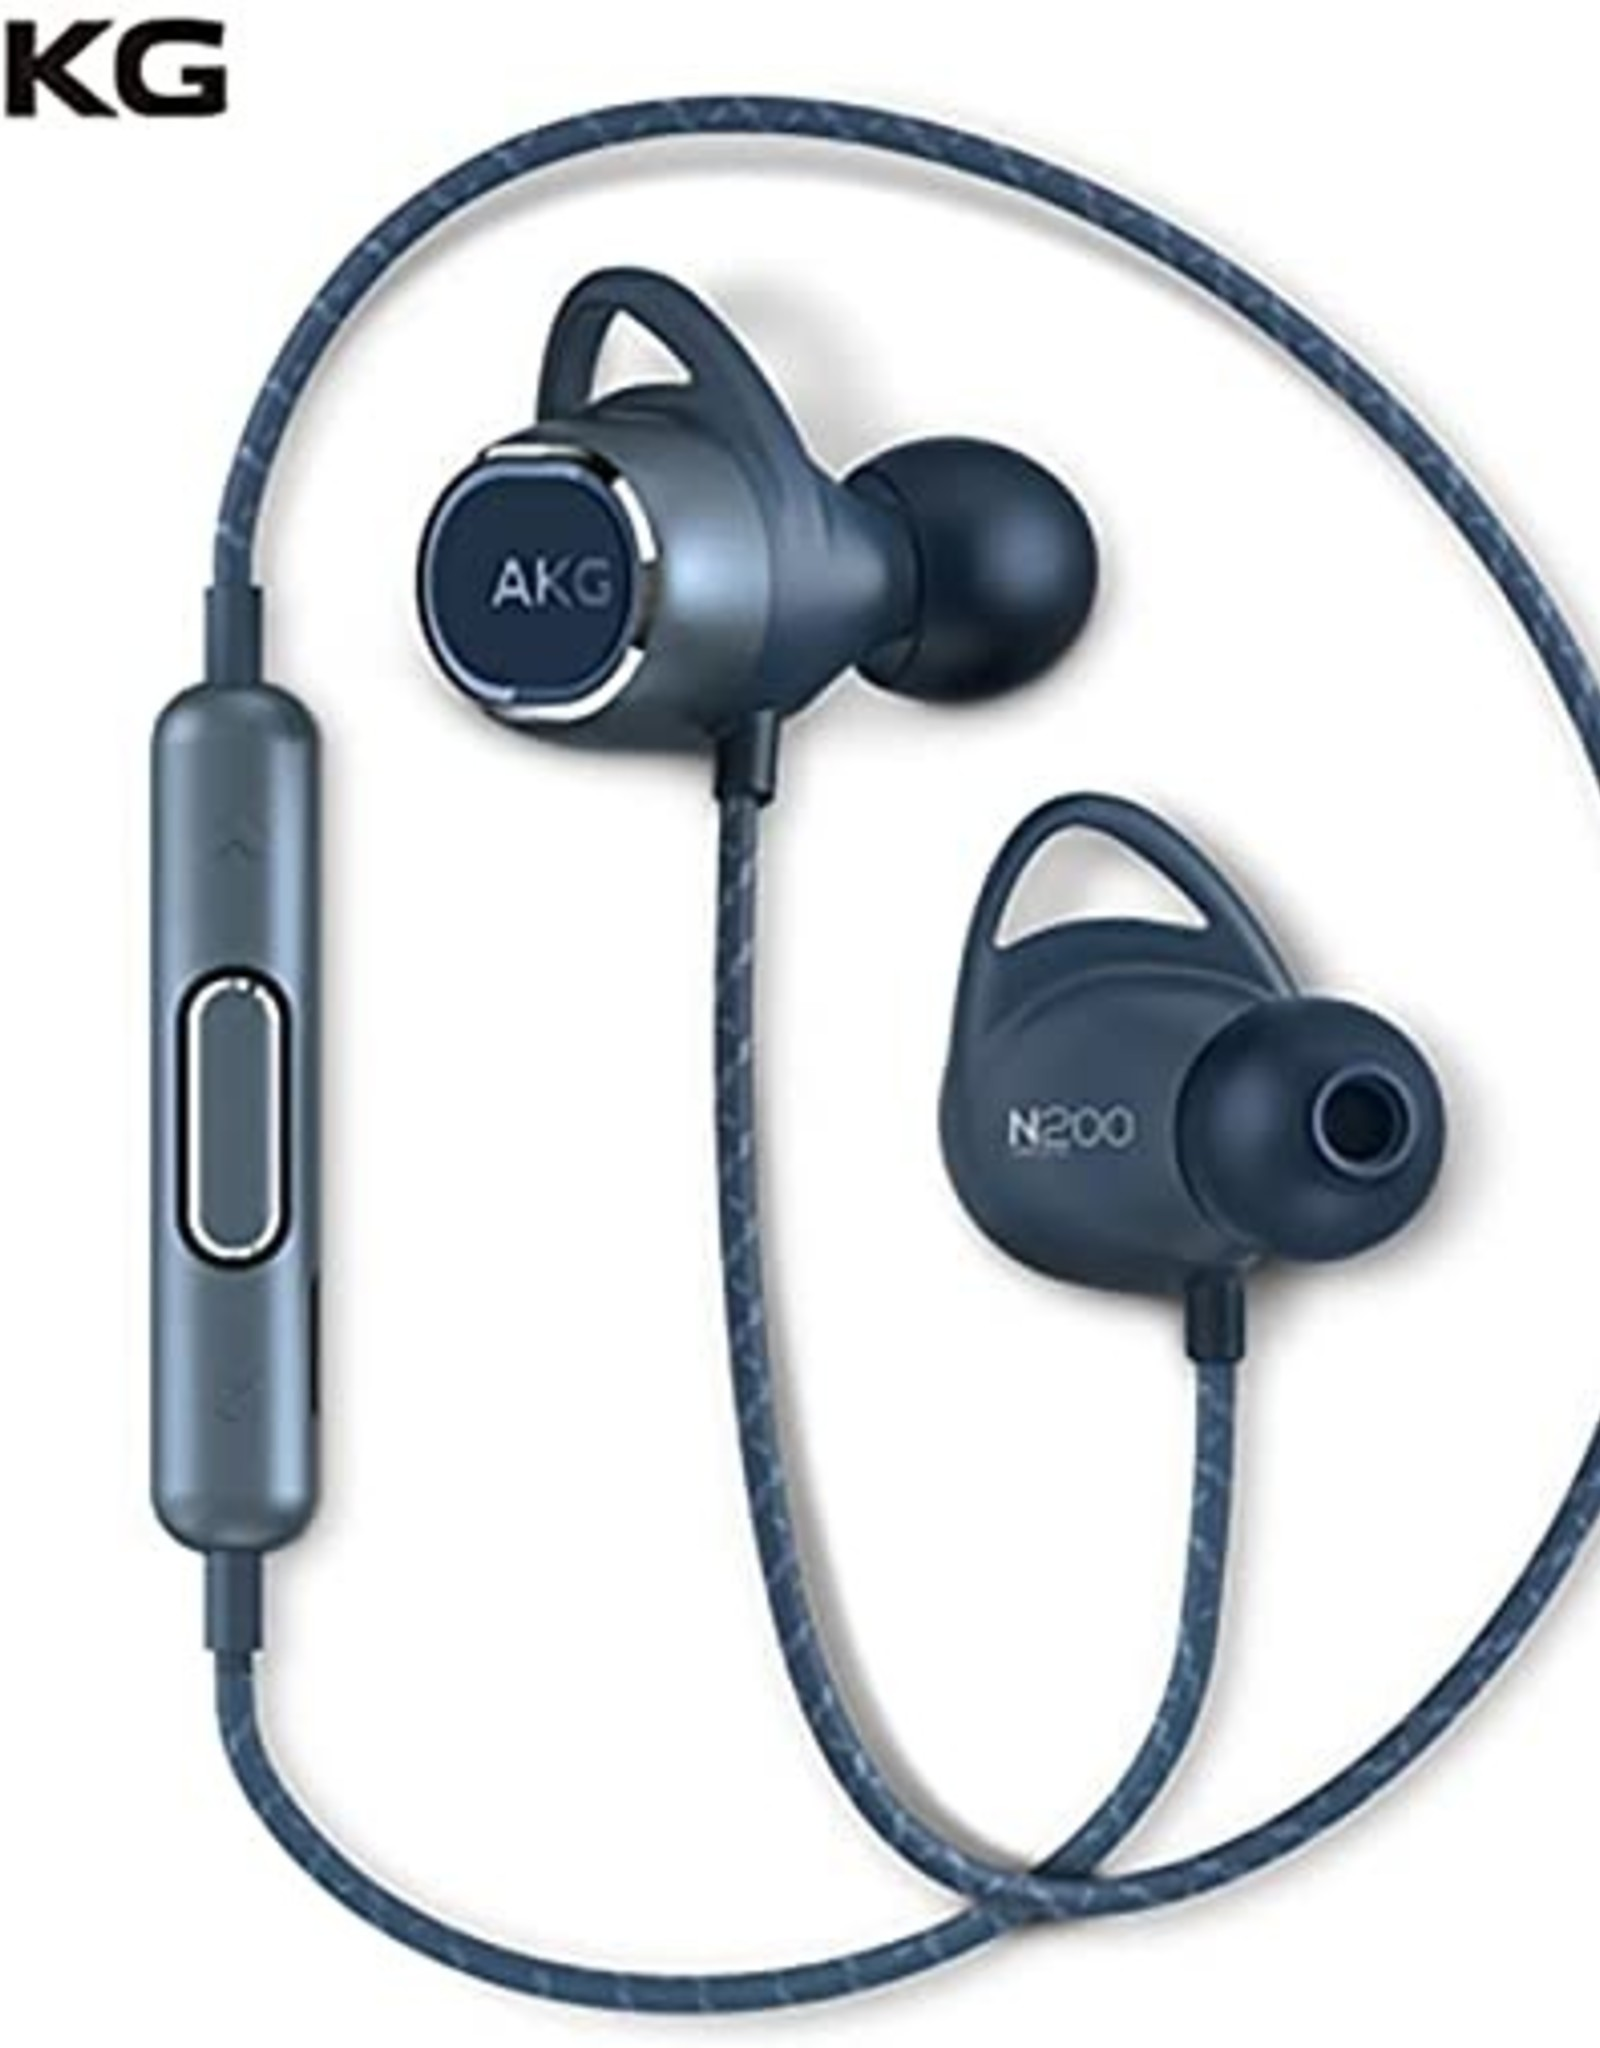 AKG AKG N200 | Earphones with mic - in-ear - Bluetooth - wireless - noise isolating - Blue